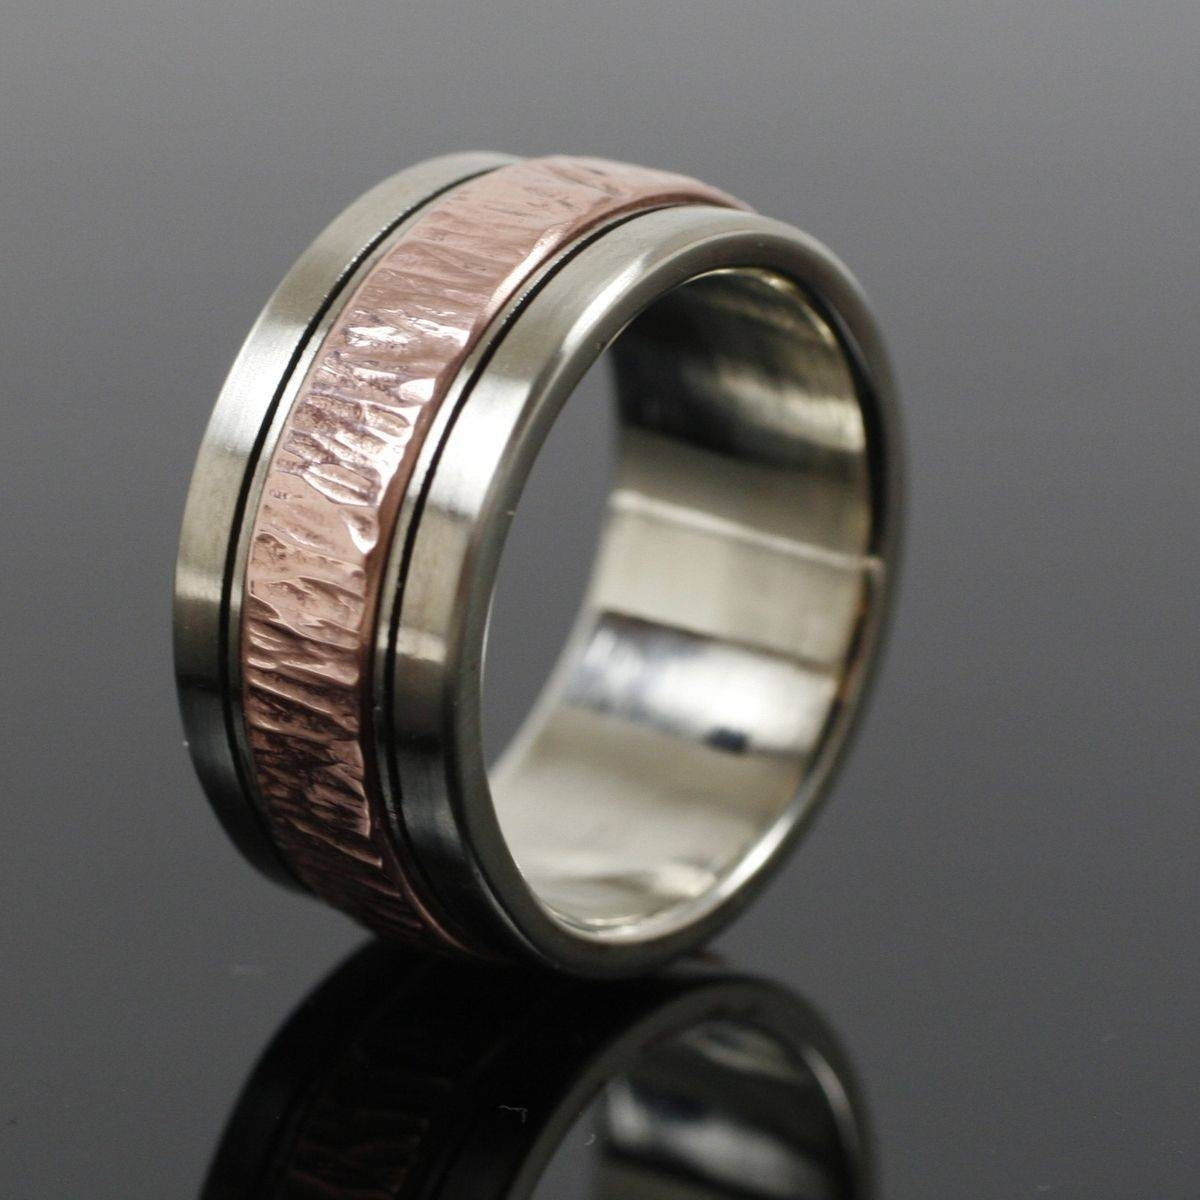 Handmade Wedding Rings | Custommade Intended For Mens Bullet Wedding Bands (Gallery 1 of 15)